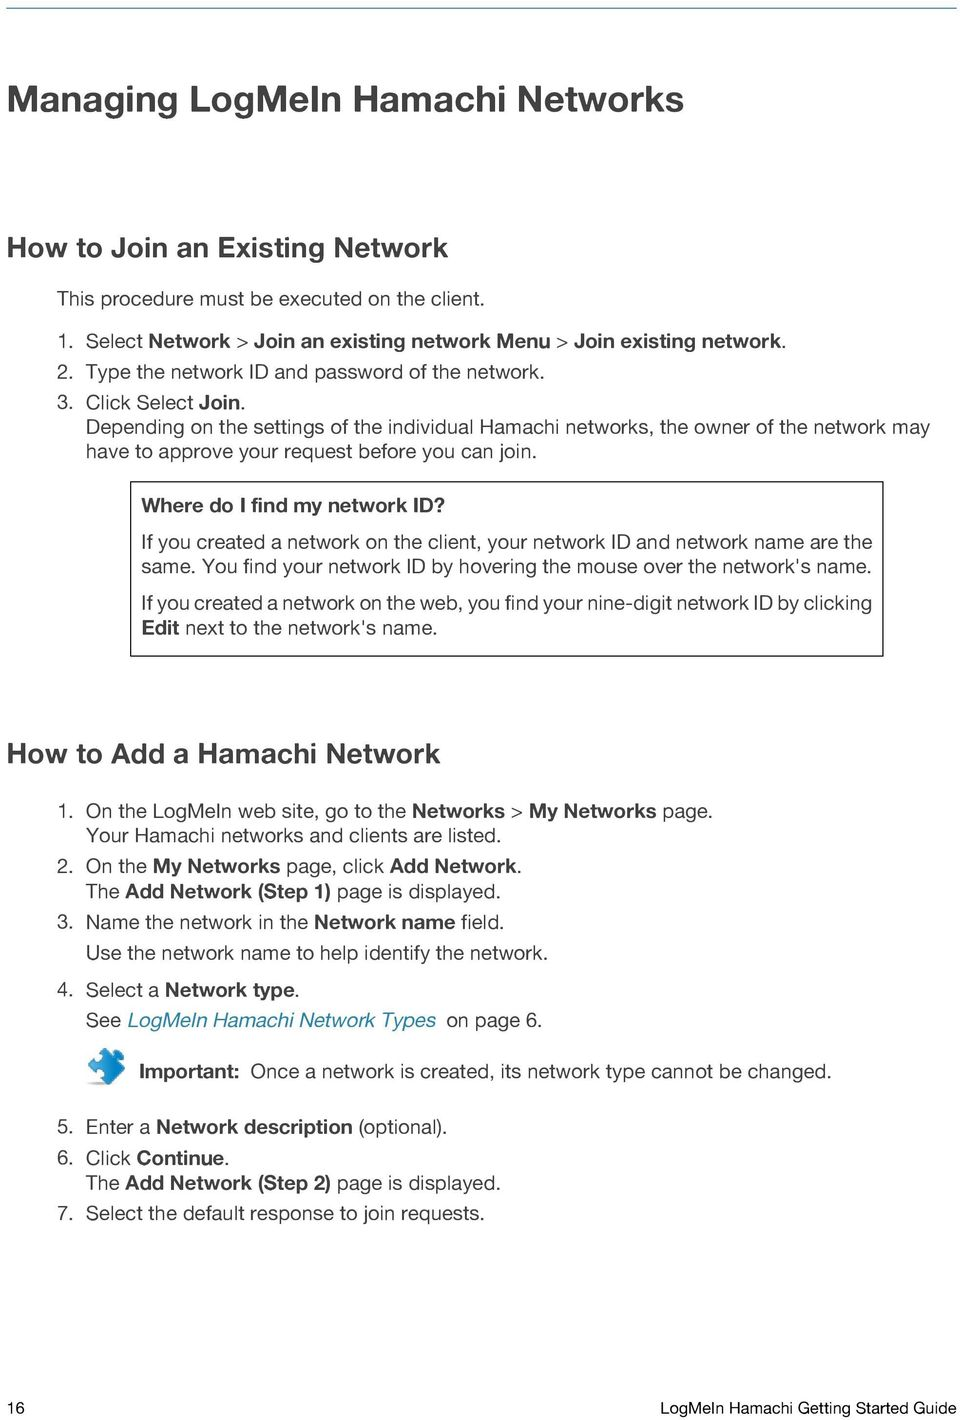 Depending on the settings of the individual Hamachi networks, the owner of the network may have to approve your request before you can join. Where do I find my network ID?